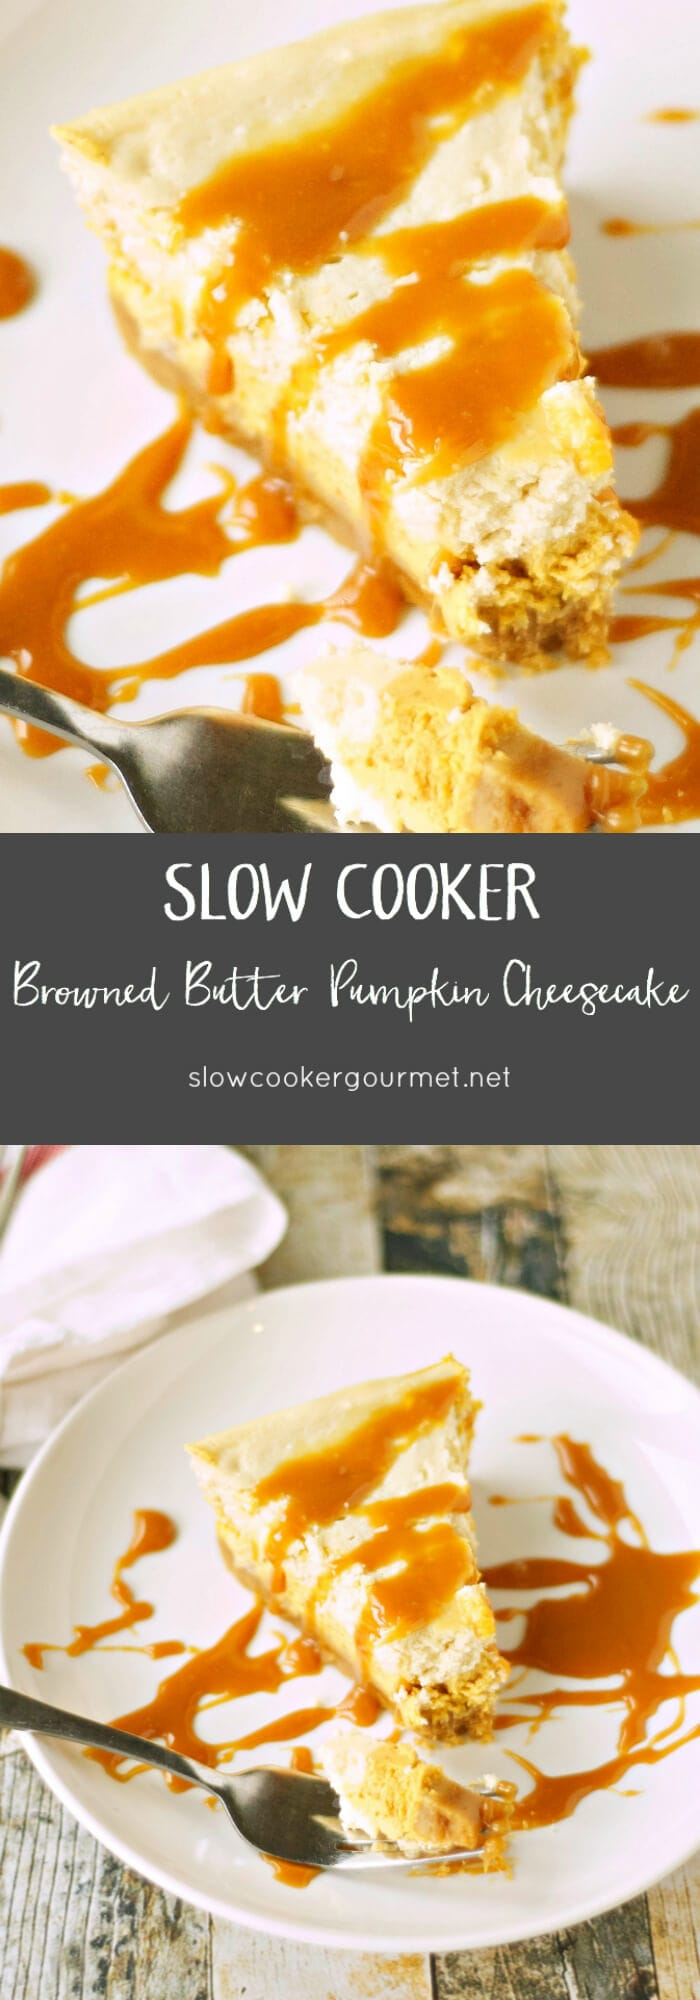 SCG-browned-butter-pumpkin-cheesecake-longpin